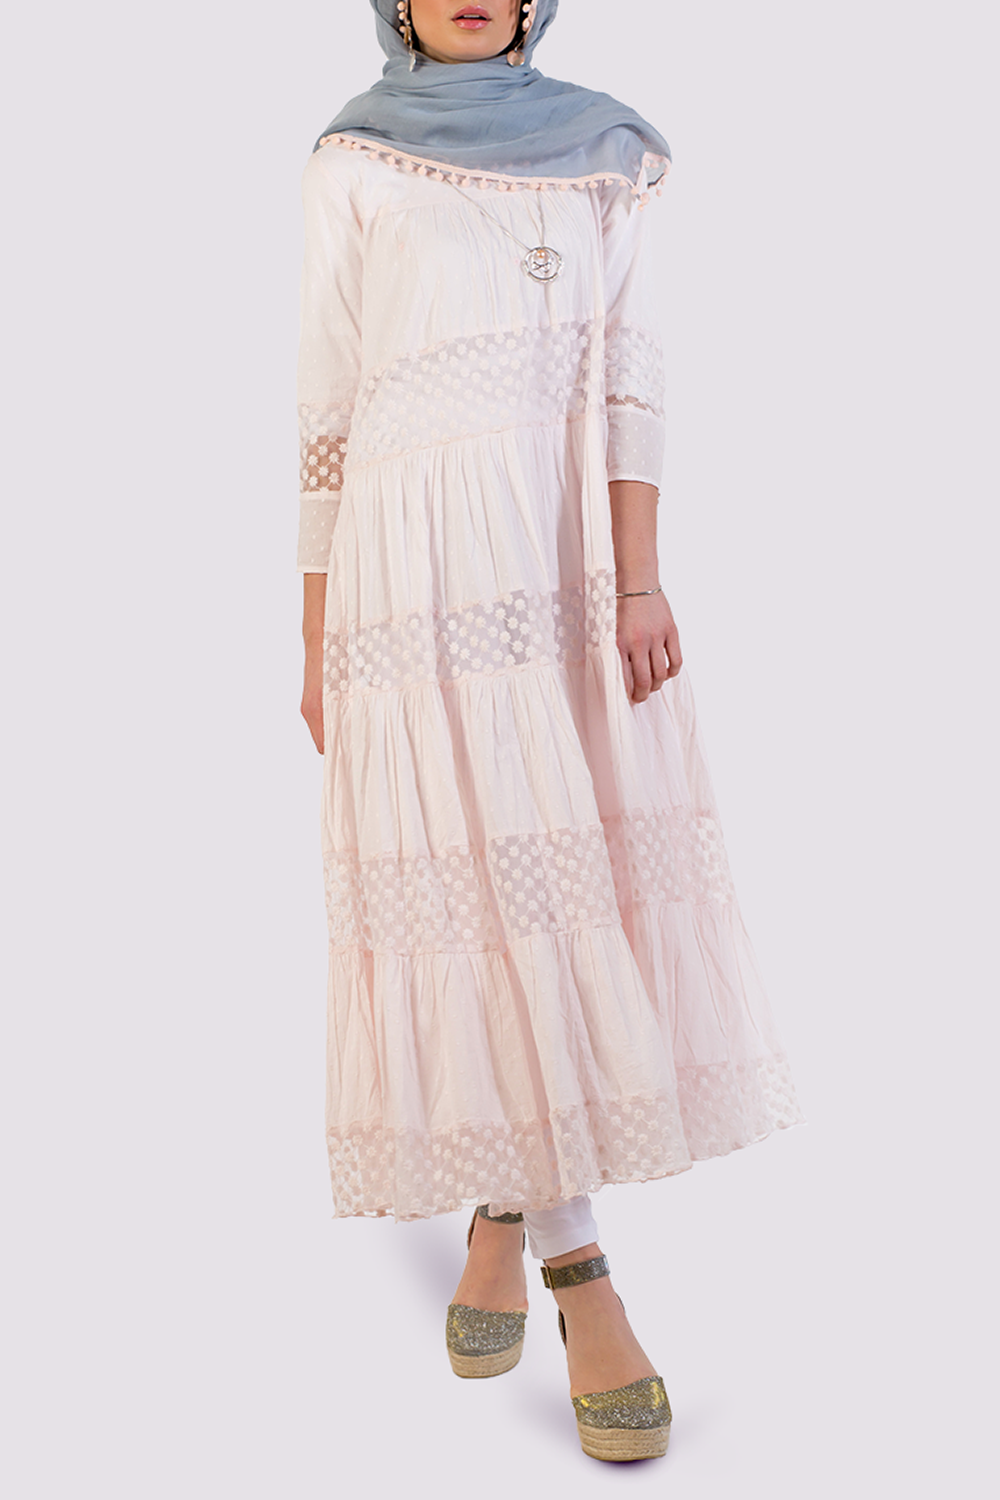 St. Tropez No51 dress in pink by Rhum Raisin.